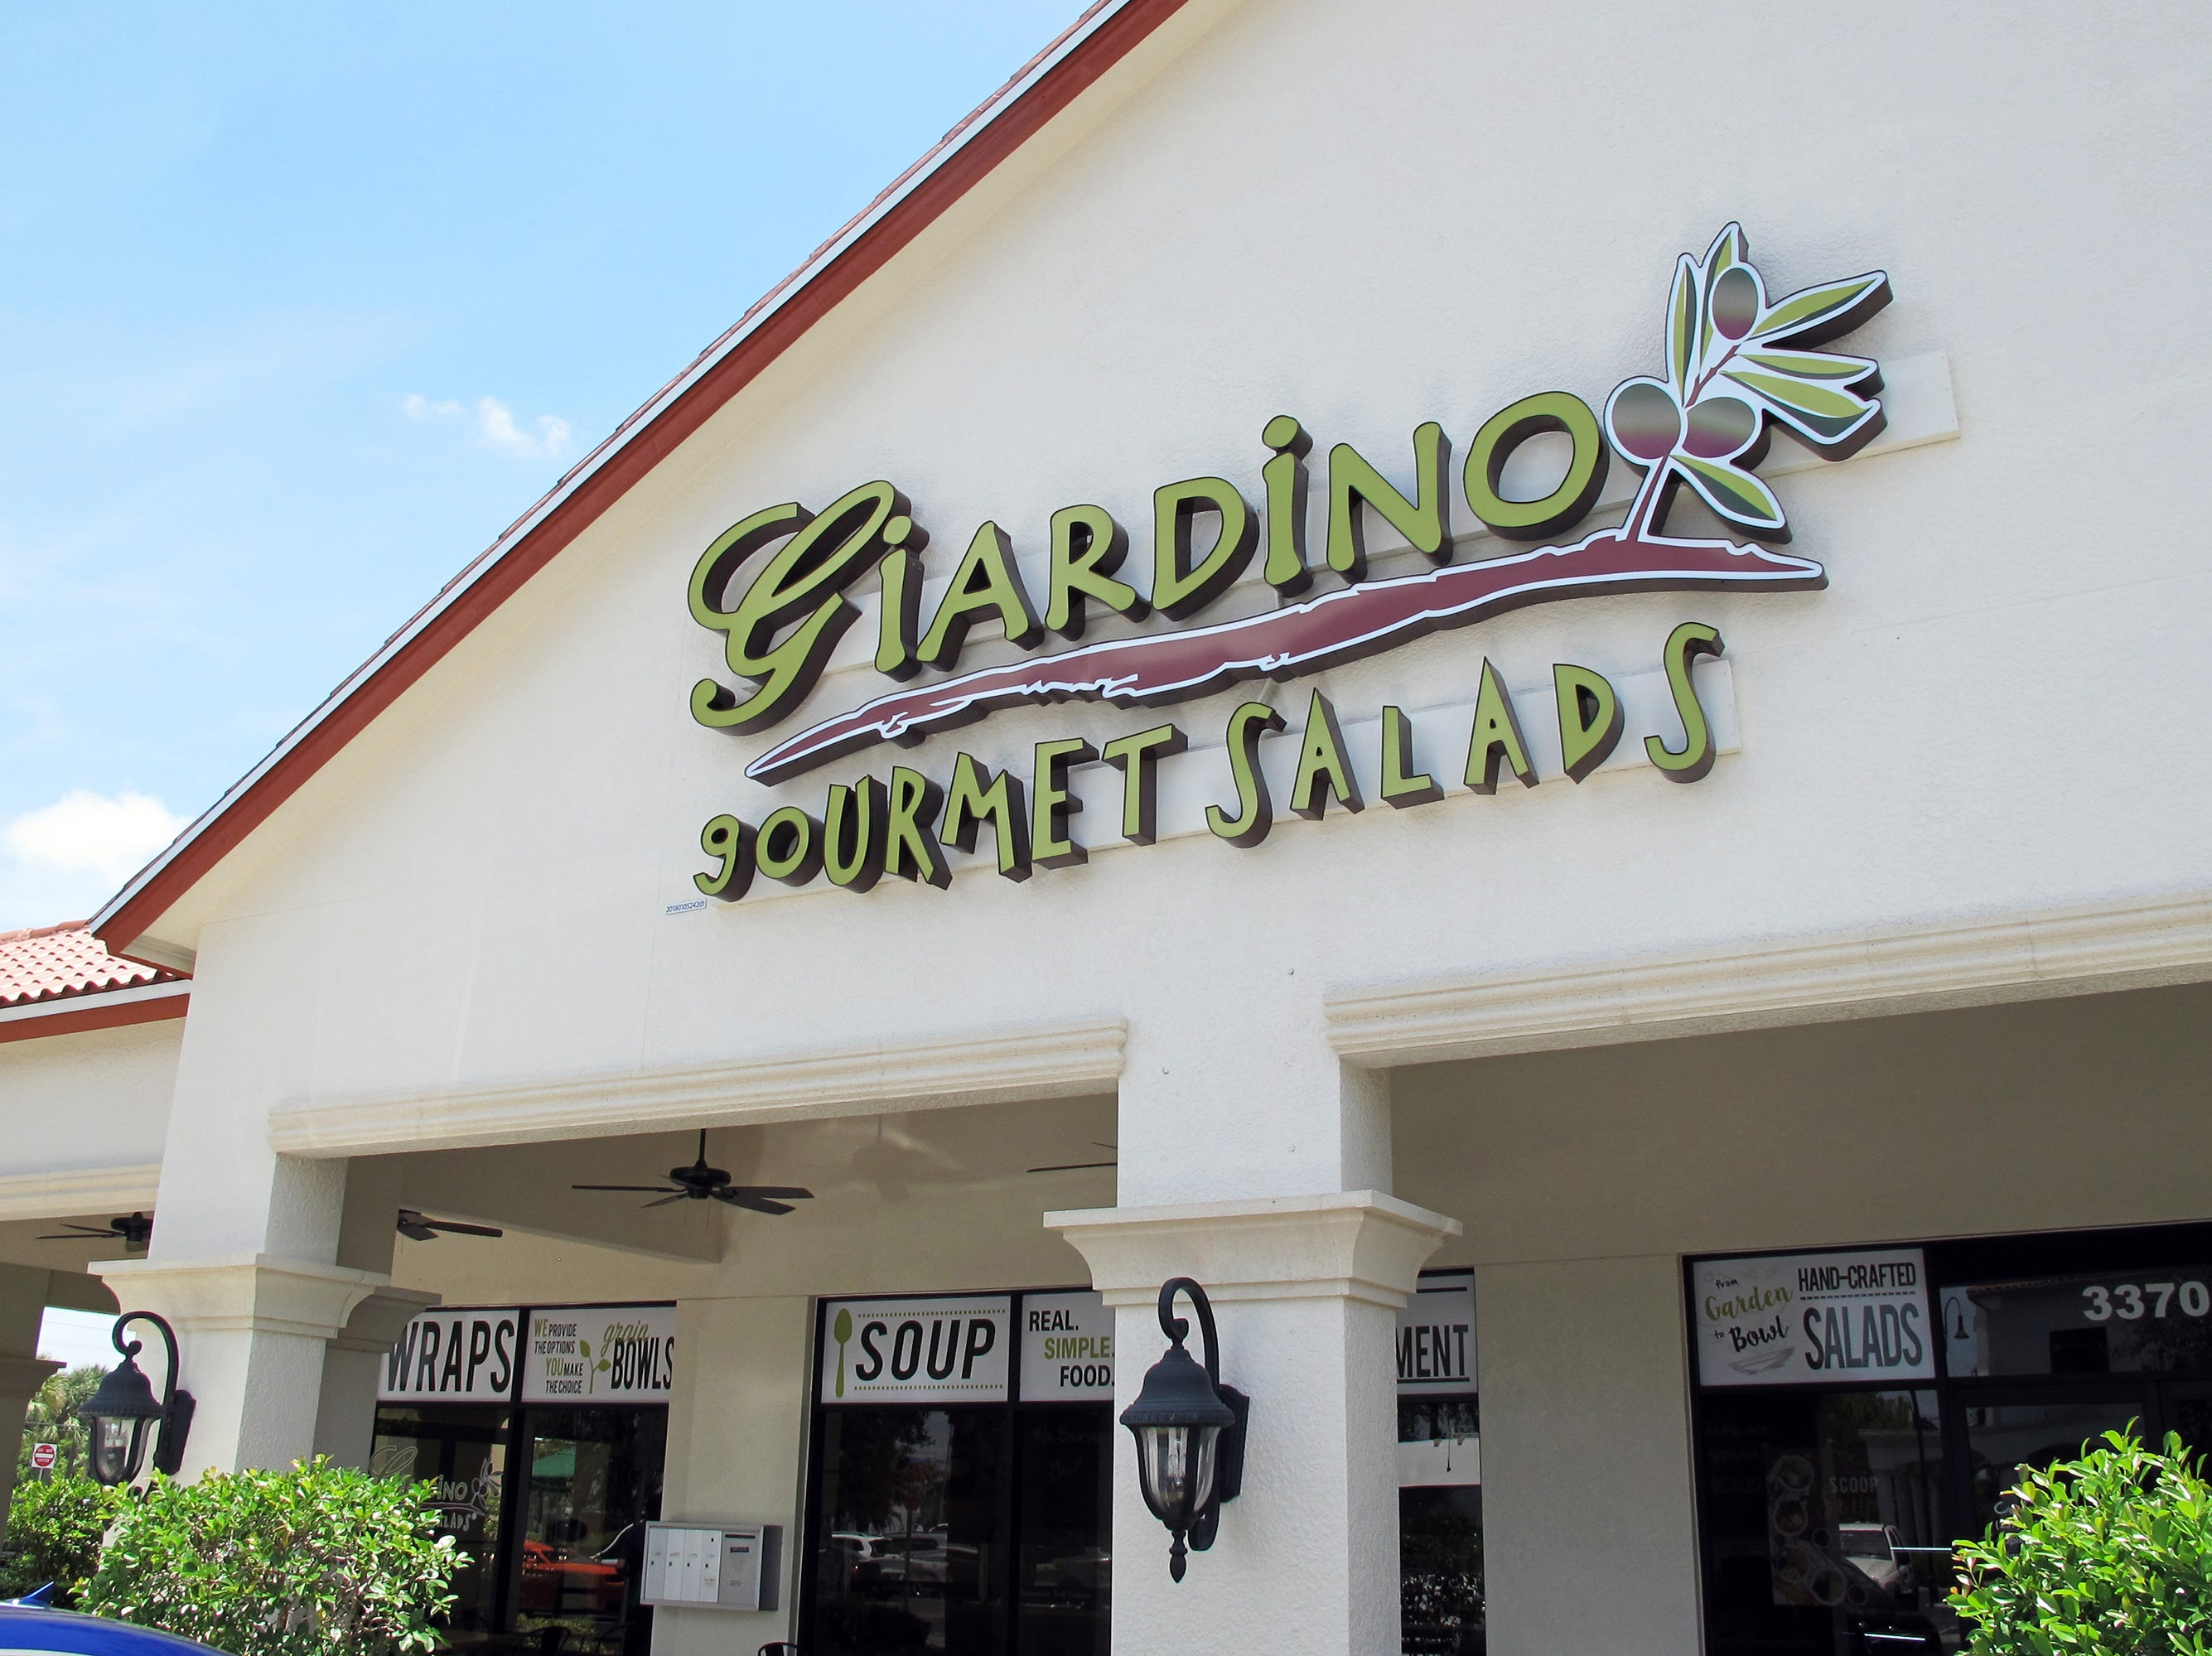 Giardino Gourmet Salads launched in July 2018 in Marquesa Plaza at 3370 Pine Ridge Road in Naples.